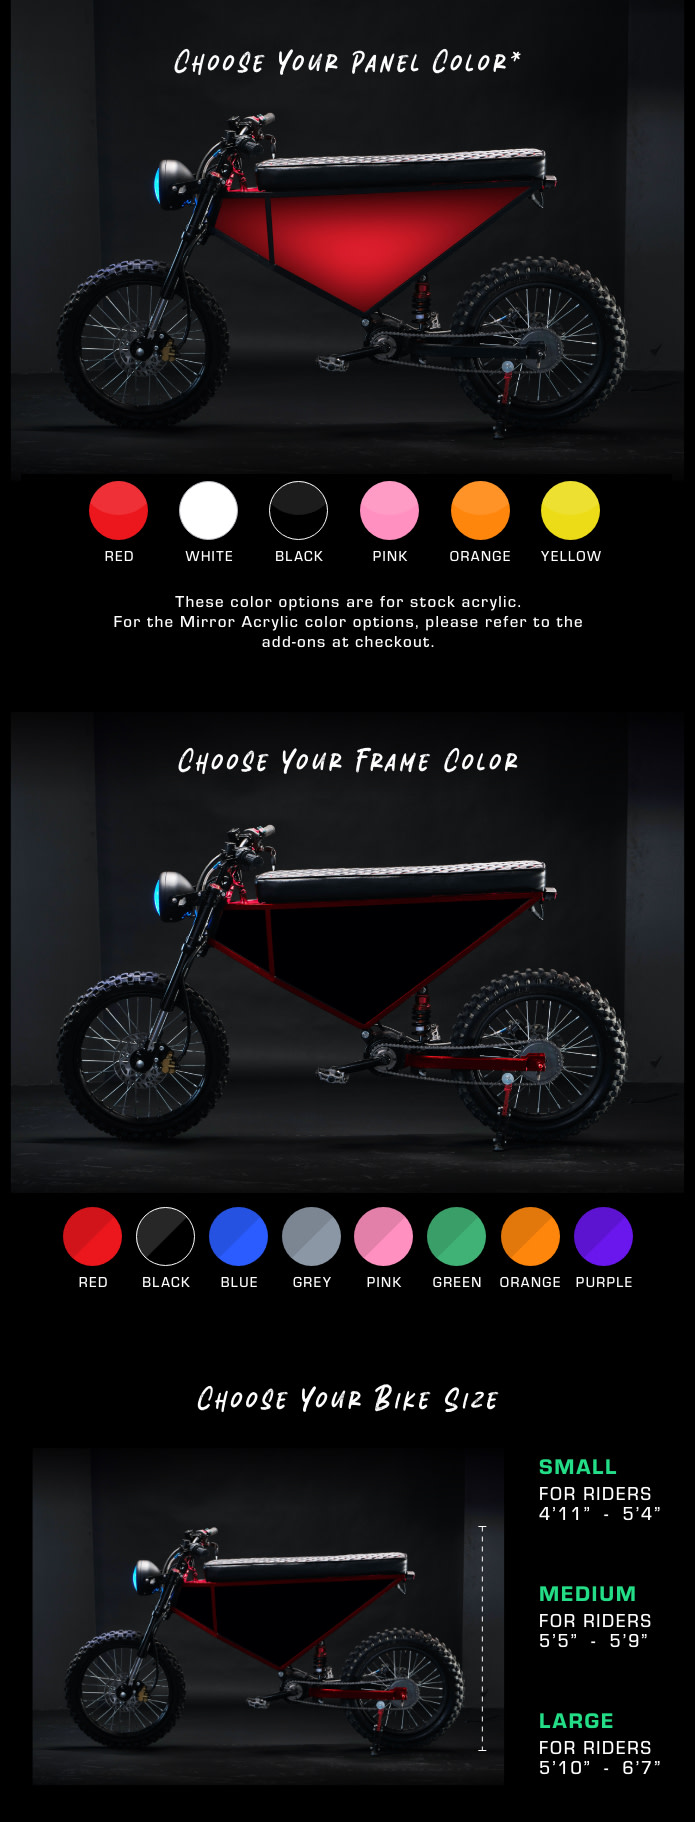 choose frame and panel colors and size